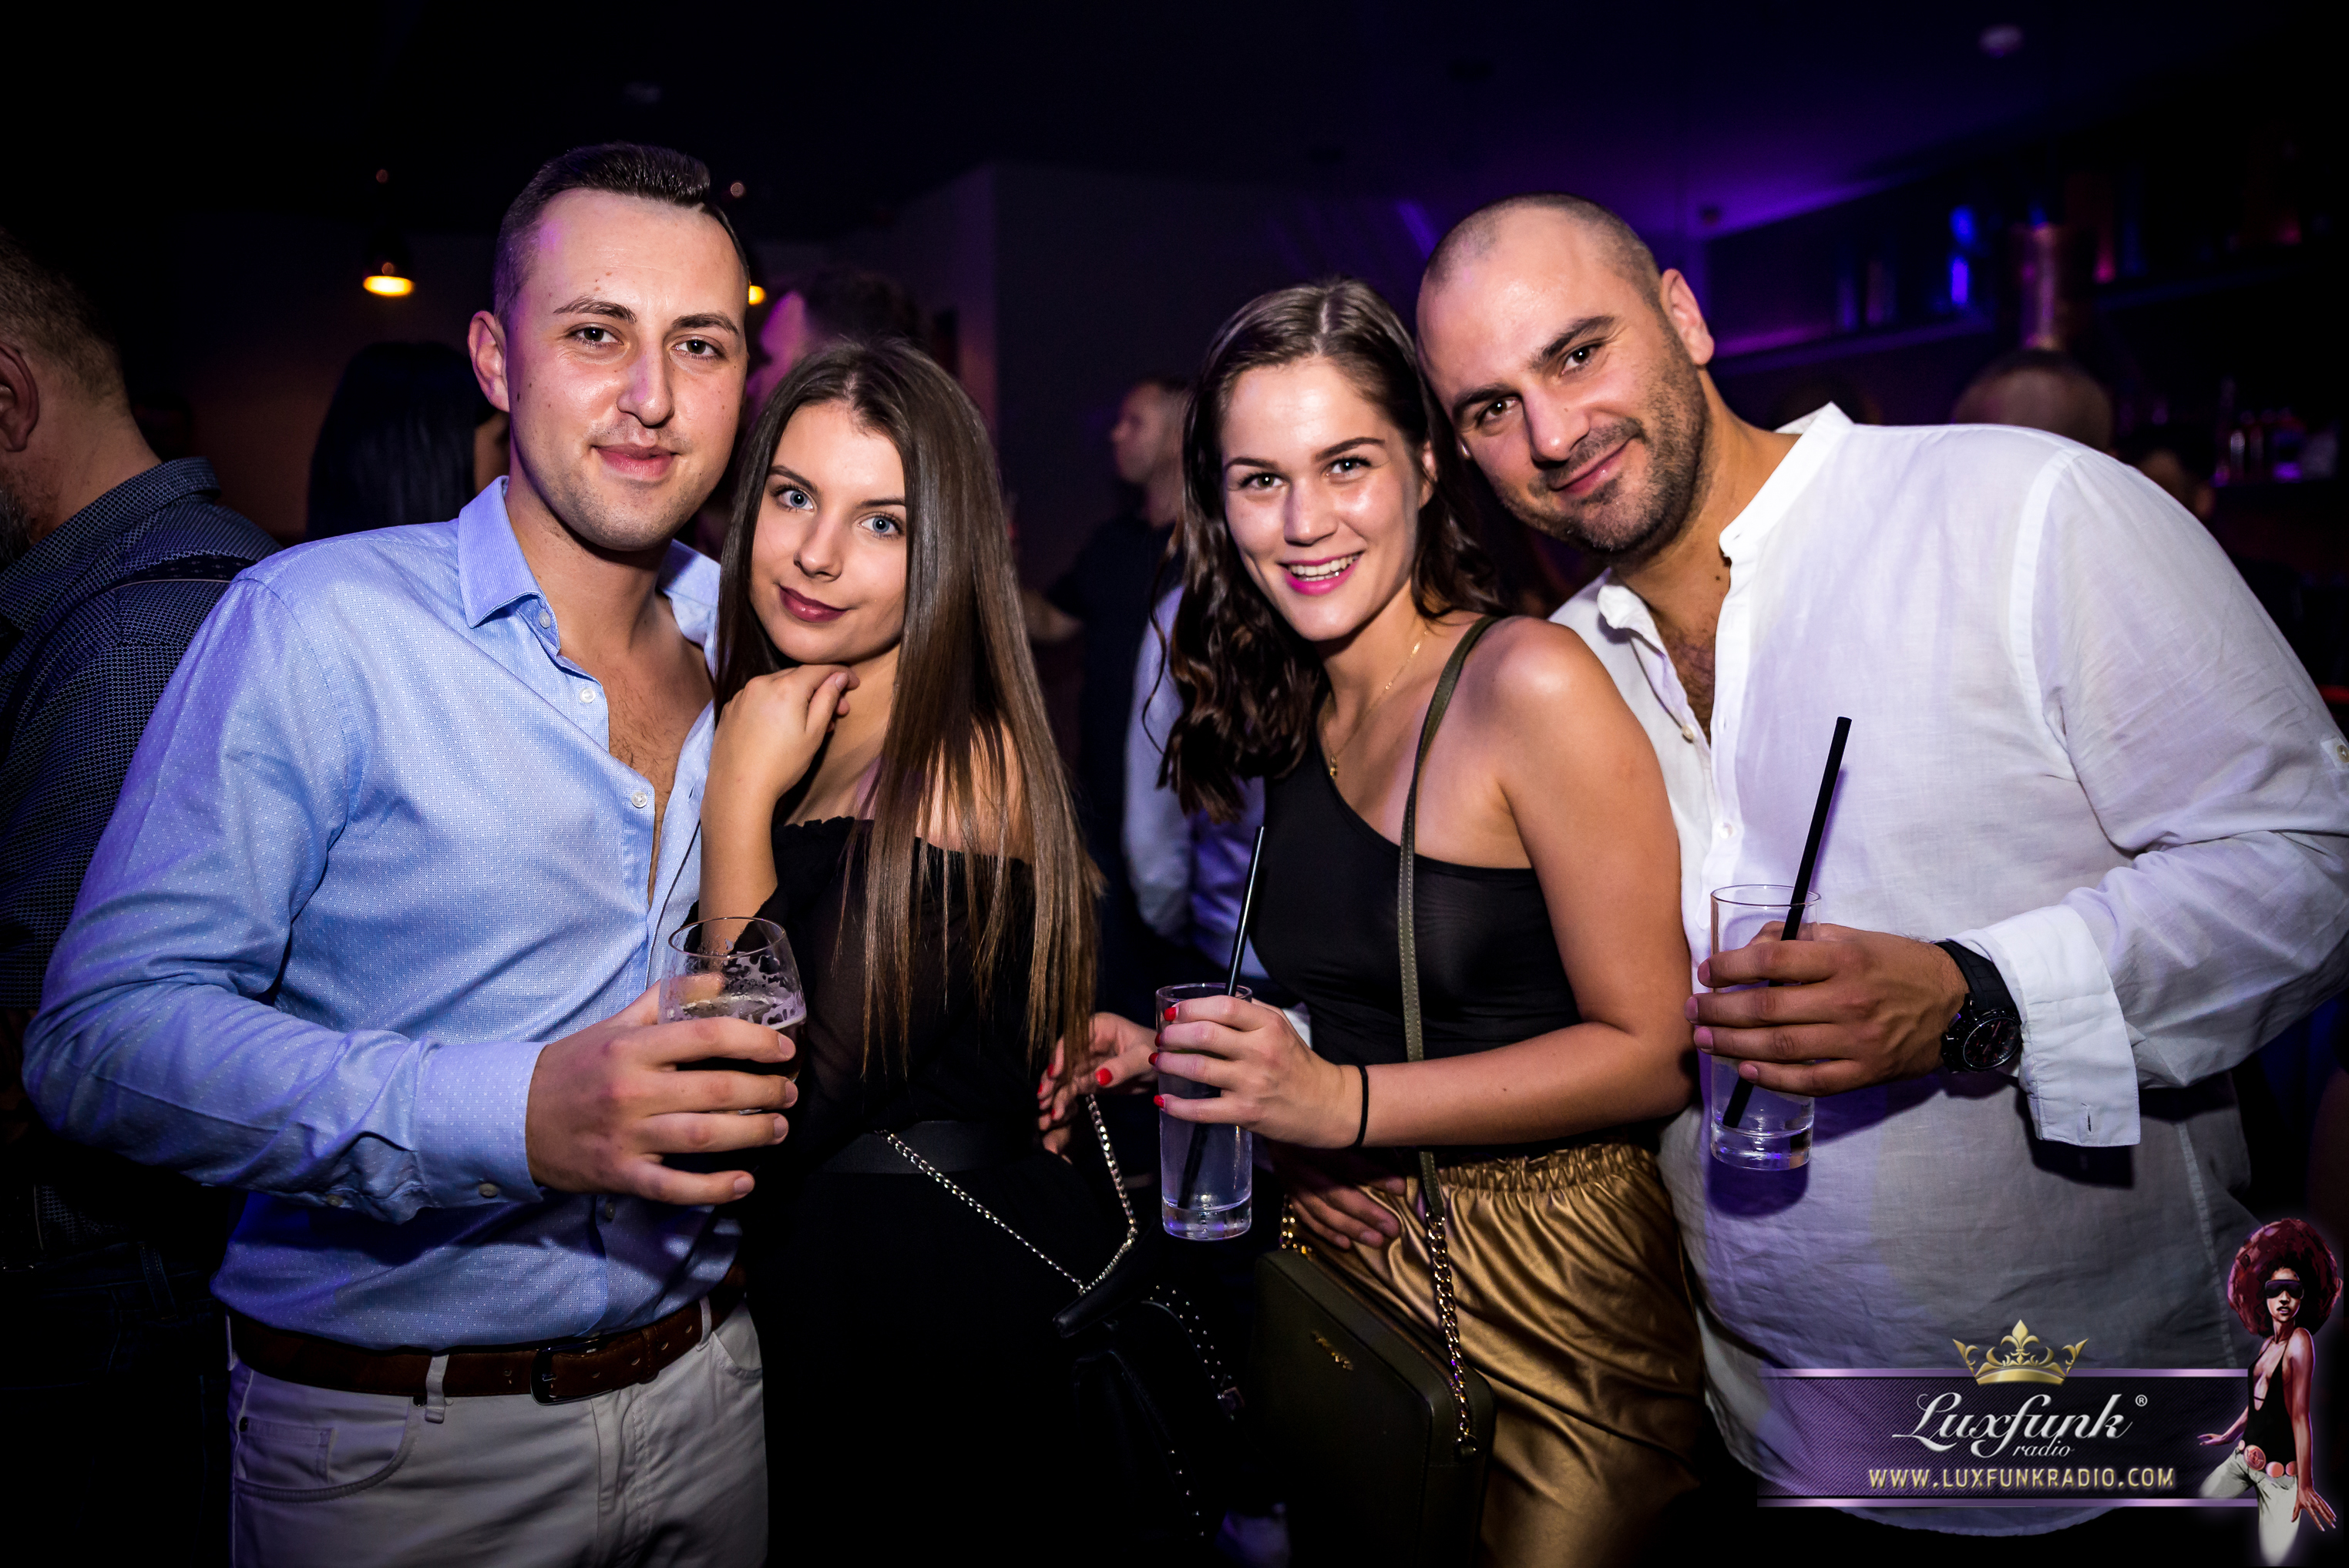 luxfunk-radio-funky-party-20191108-lock-budapest-1187